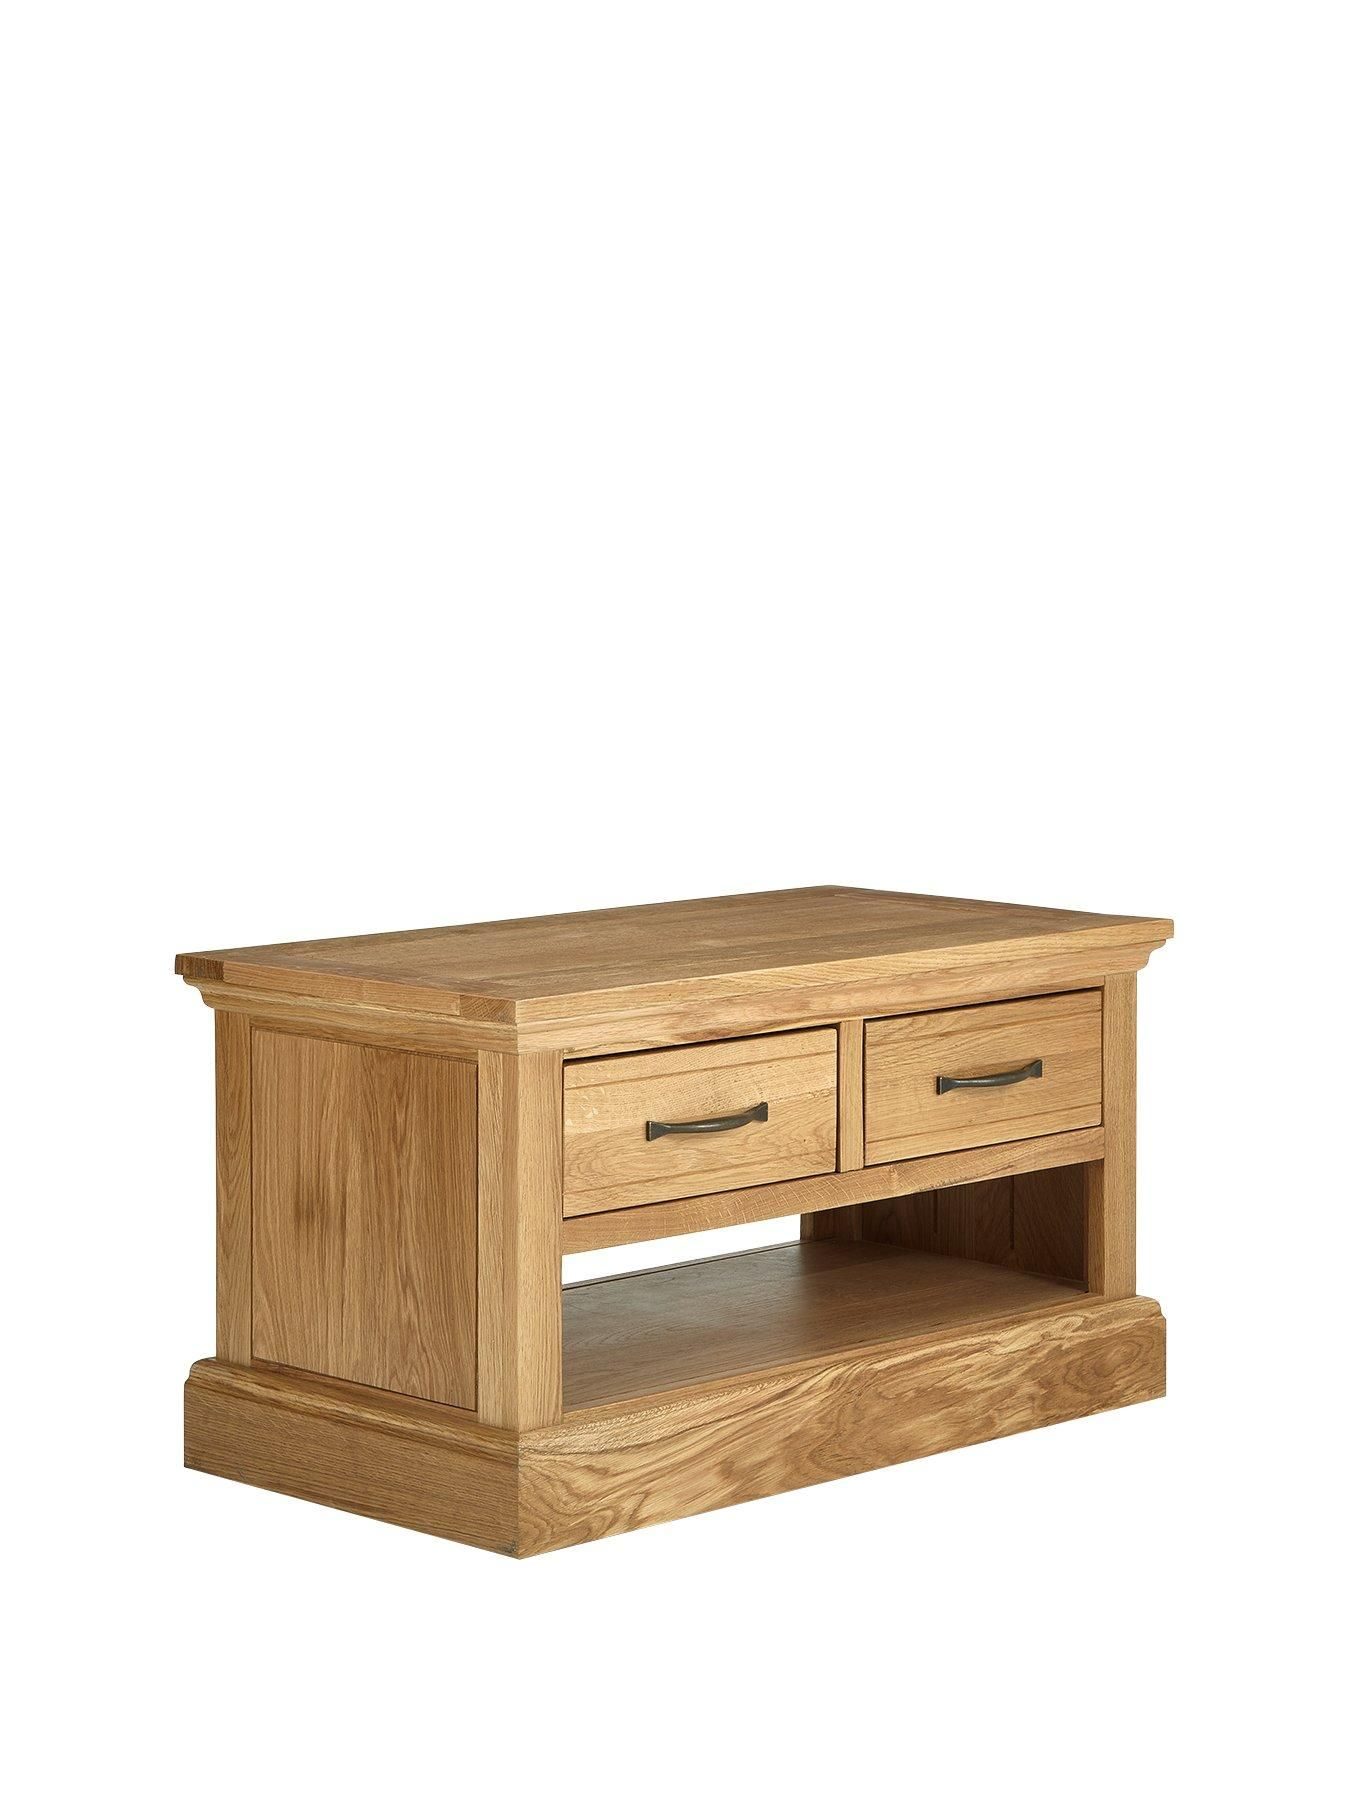 Tempel Wooden Coffee Table Teak Coffee Table Cool Coffee Tables